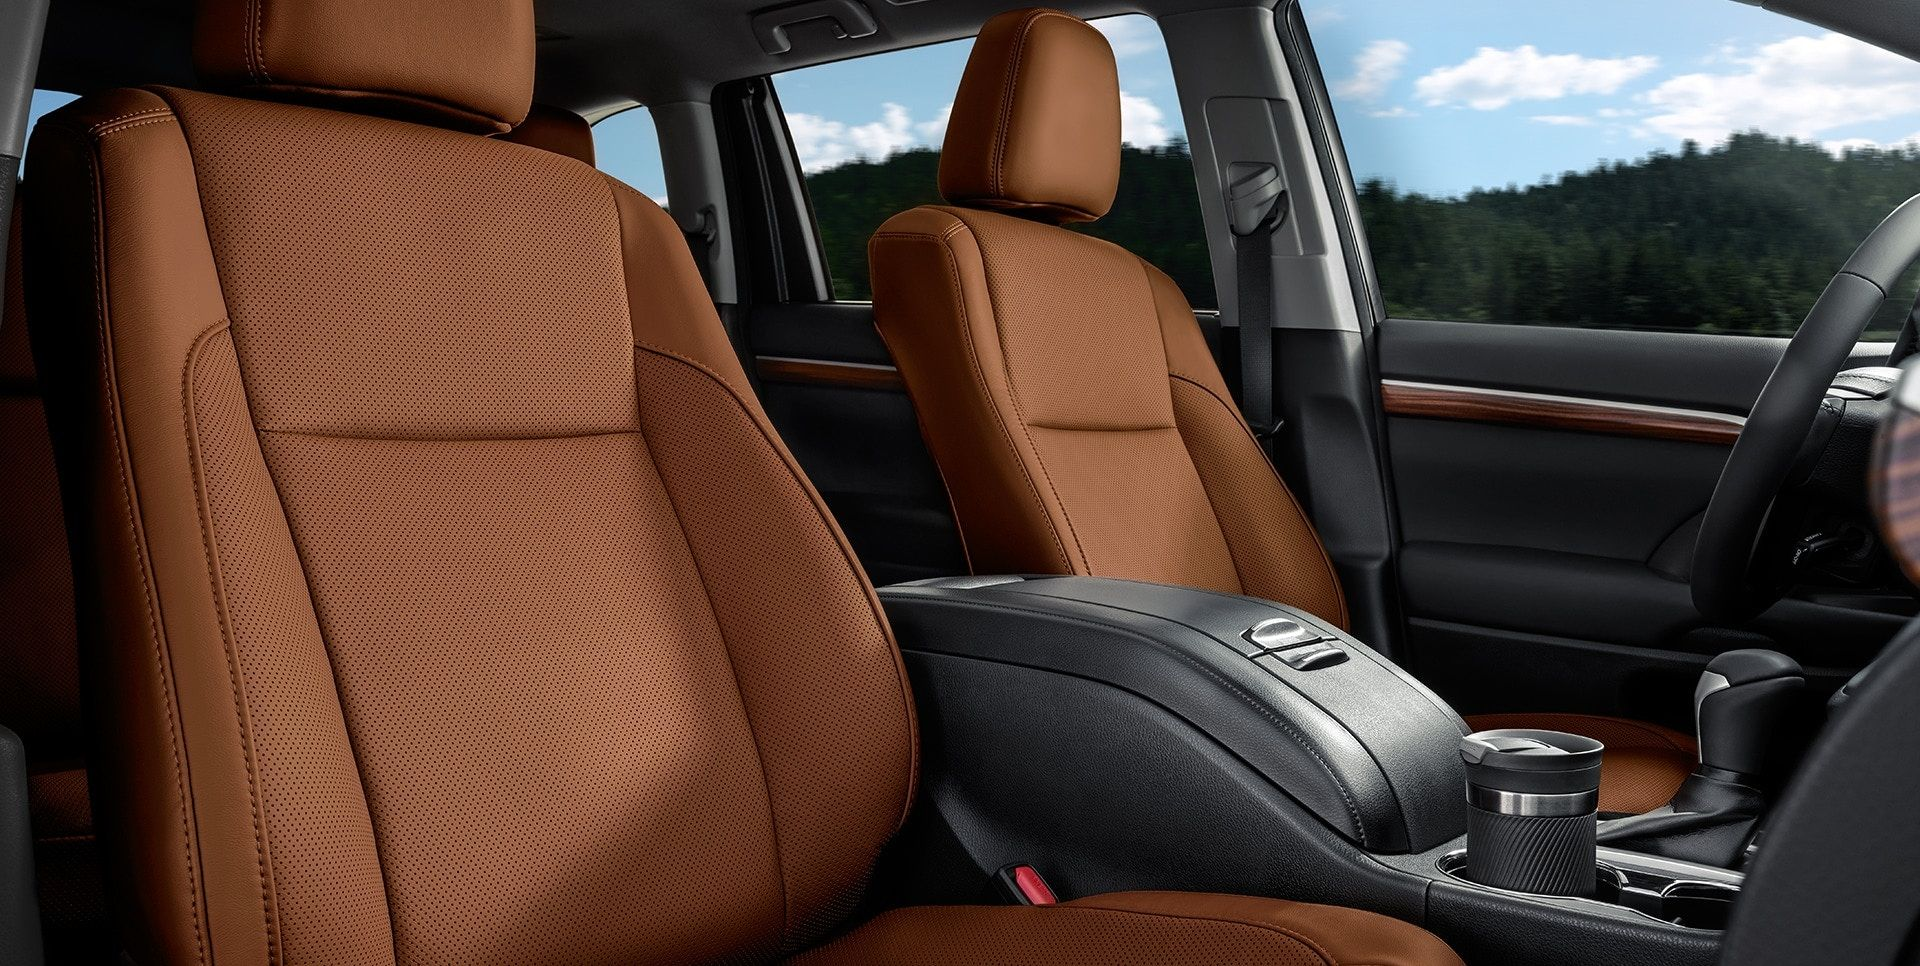 Luxurious Seating Options in the Highlander